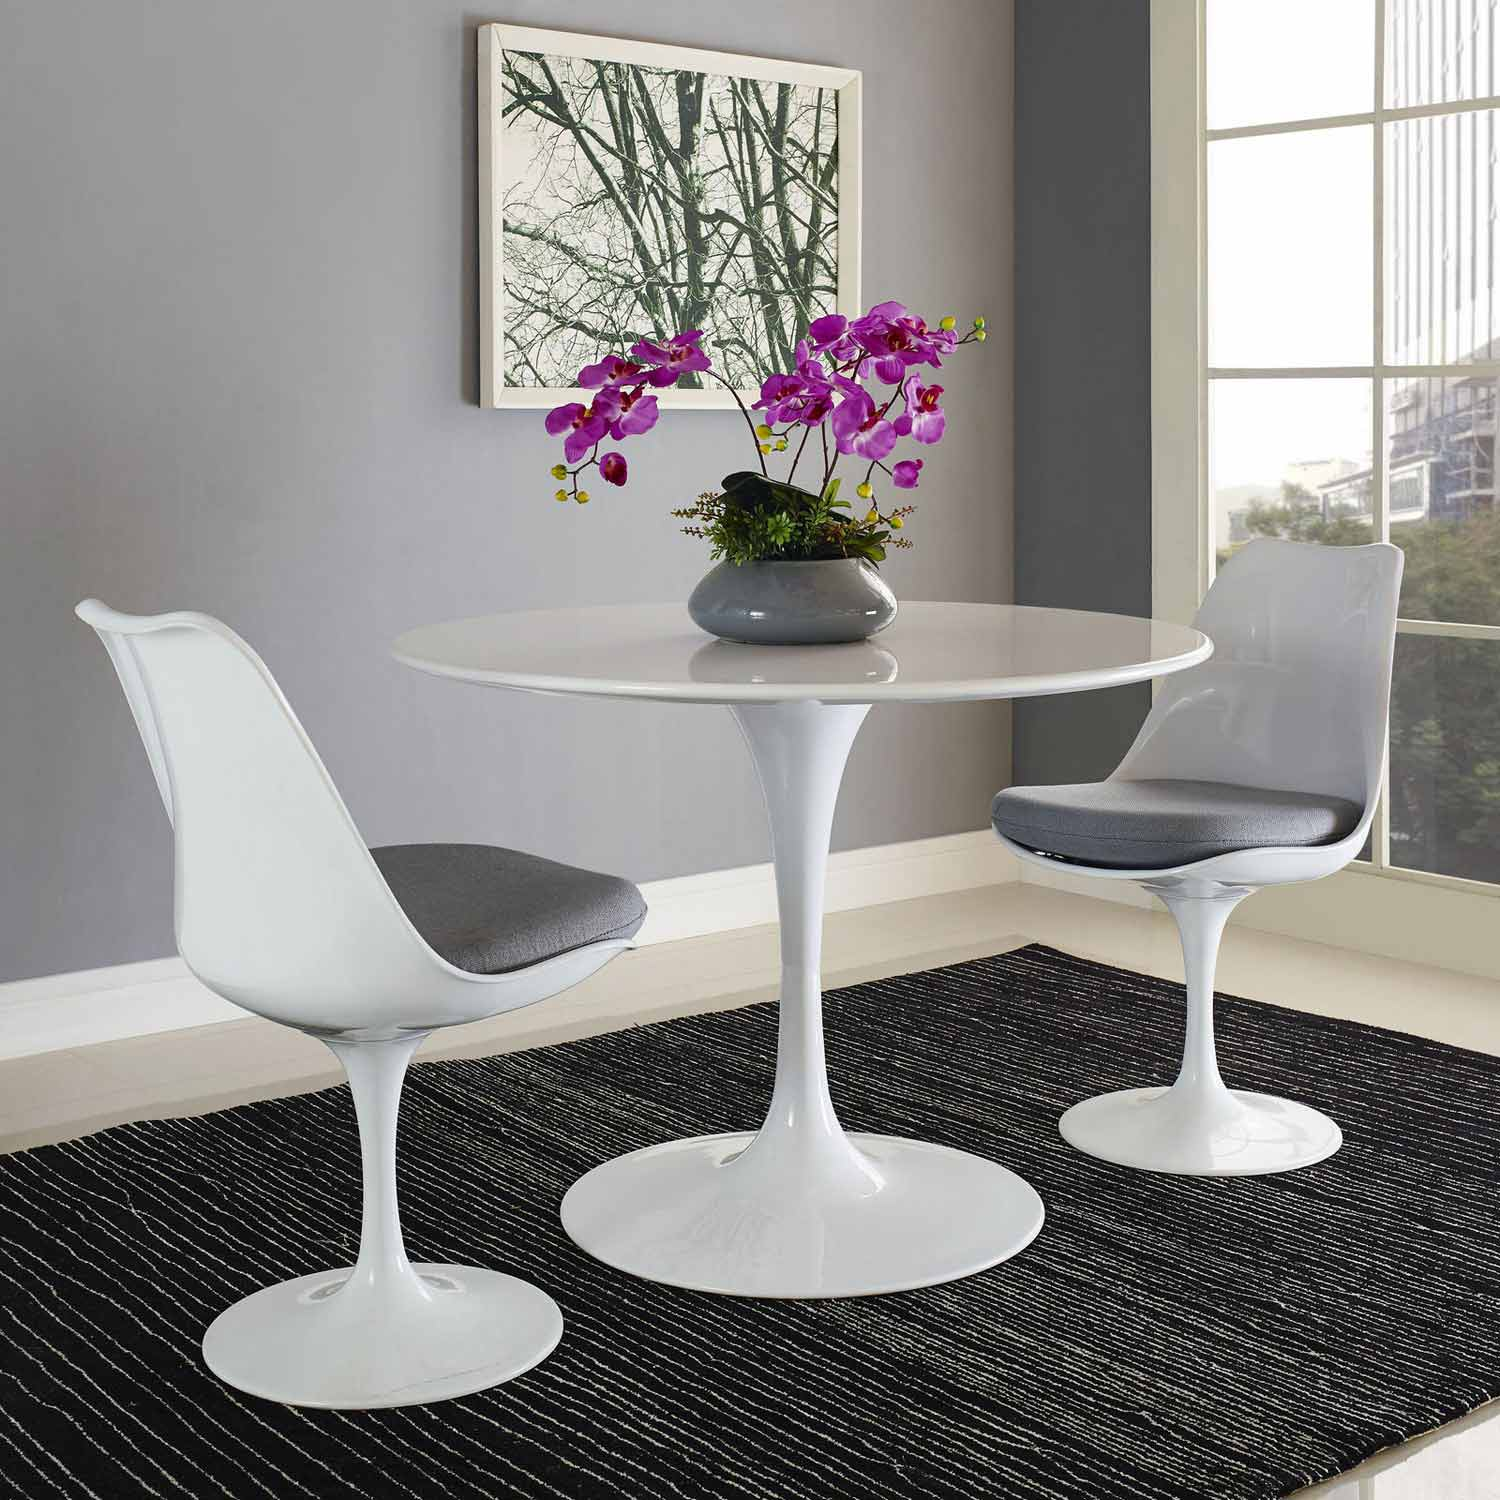 Modway Lippa 40 Wood Top Dining Table - White